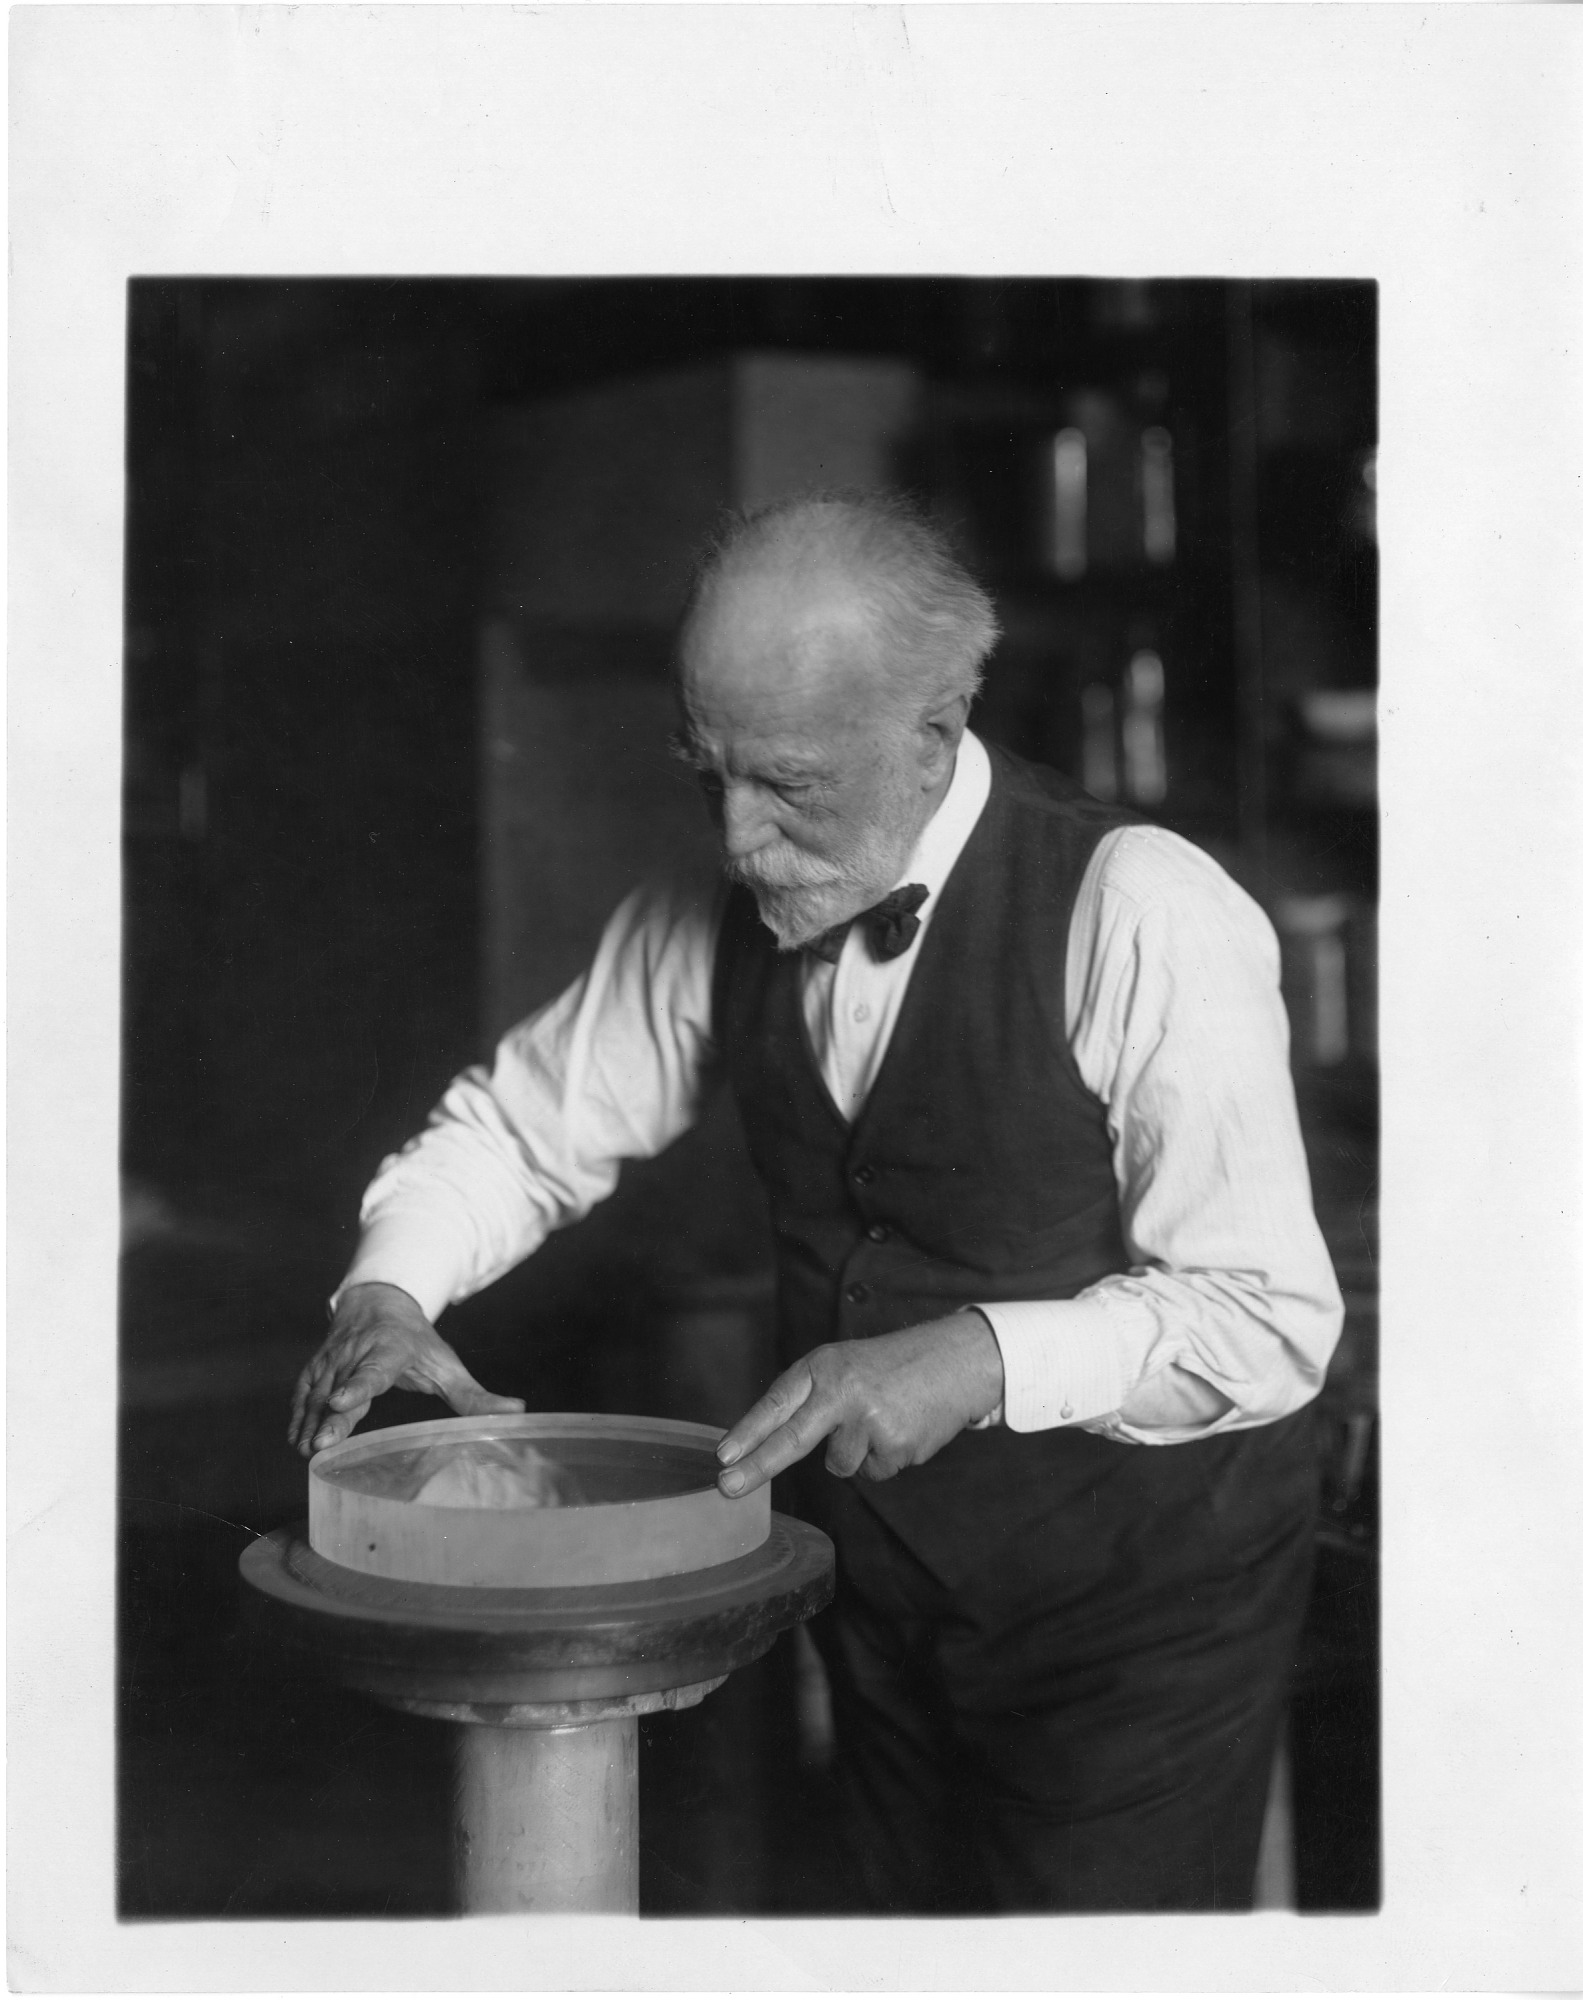 John Clacey (1857-1931), Smithsonian Institution Archives, SIA Acc. 90-105 [SIA2008-0109].